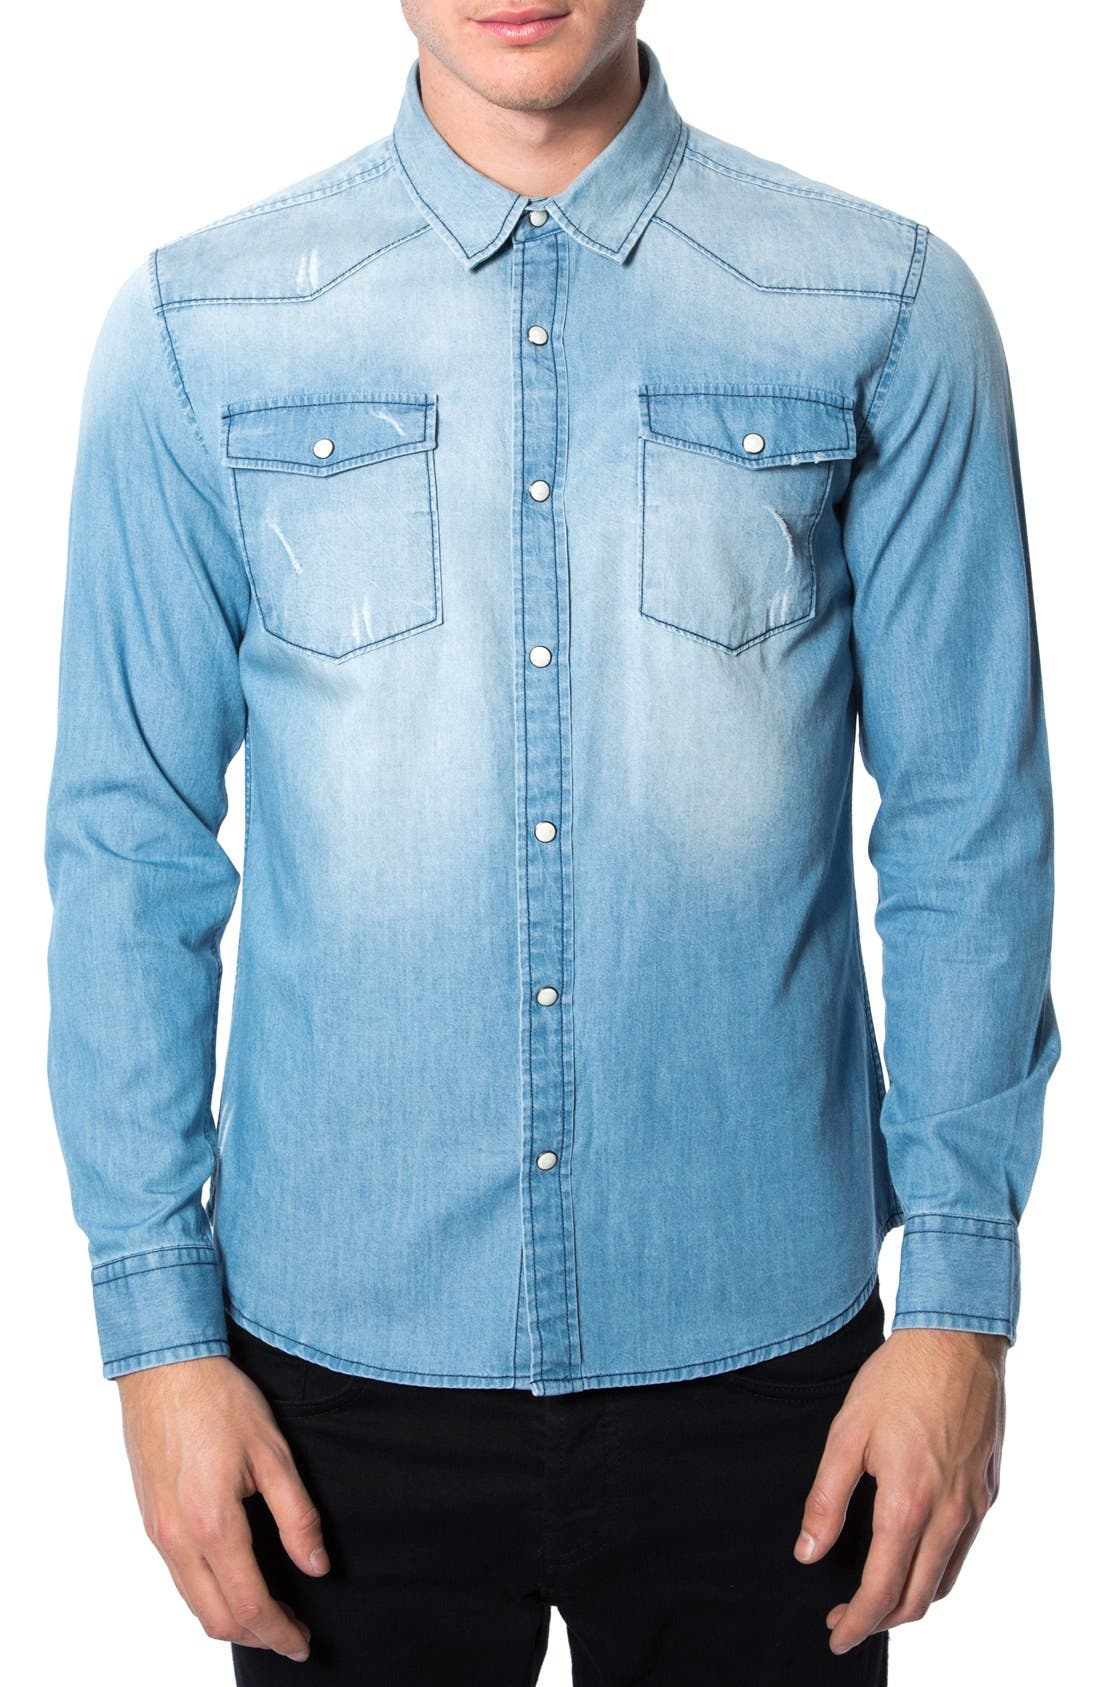 Alternate Image 1 Selected - 7 Diamonds 'Beyond Me' Trim Fit Chambray Shirt